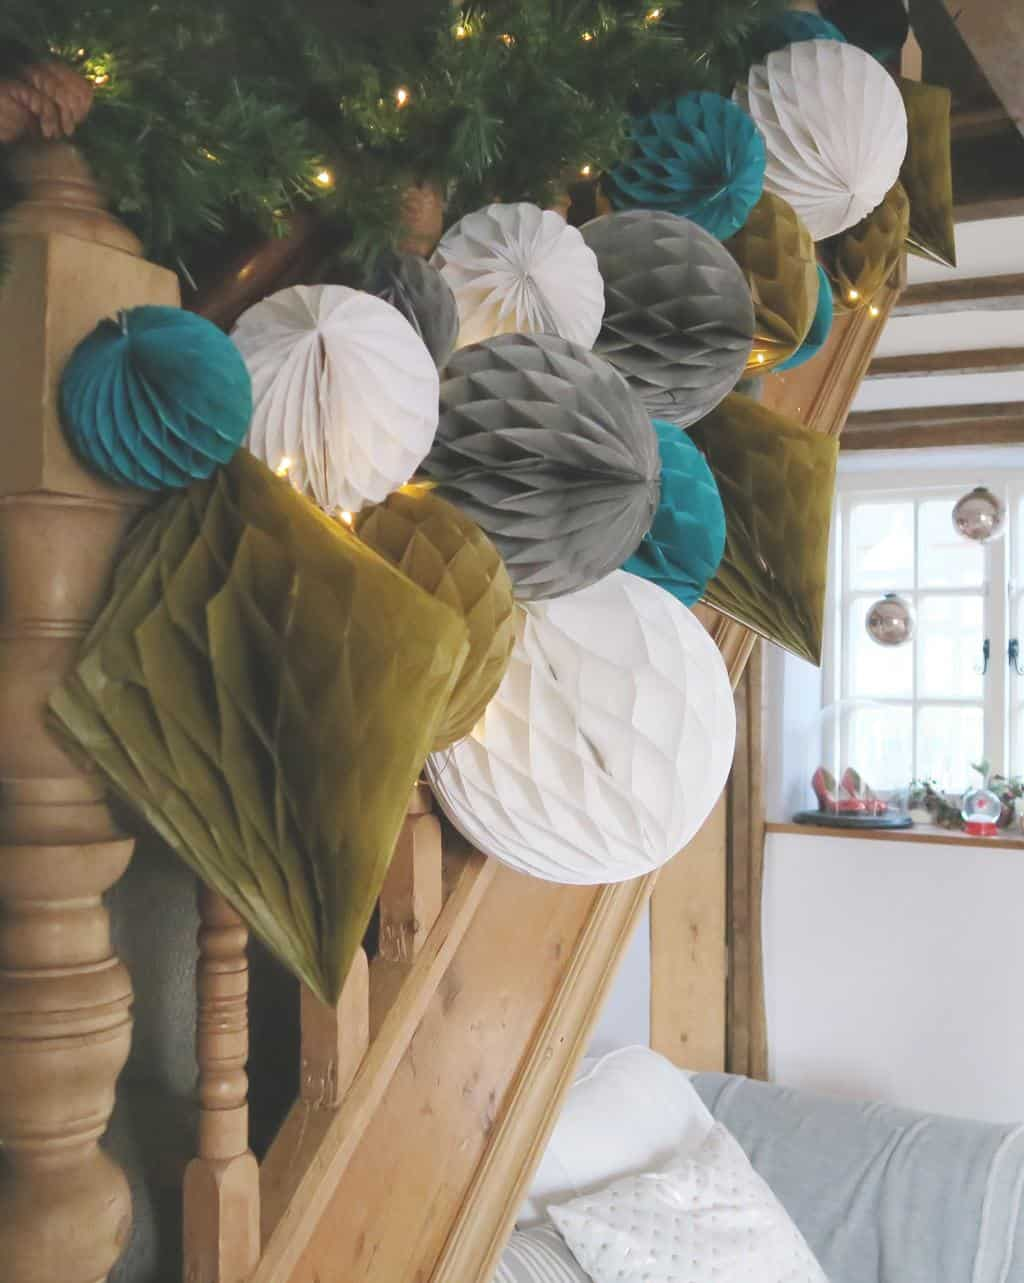 Decorating a Staircase with Honeycomb Balls and paper pom poms